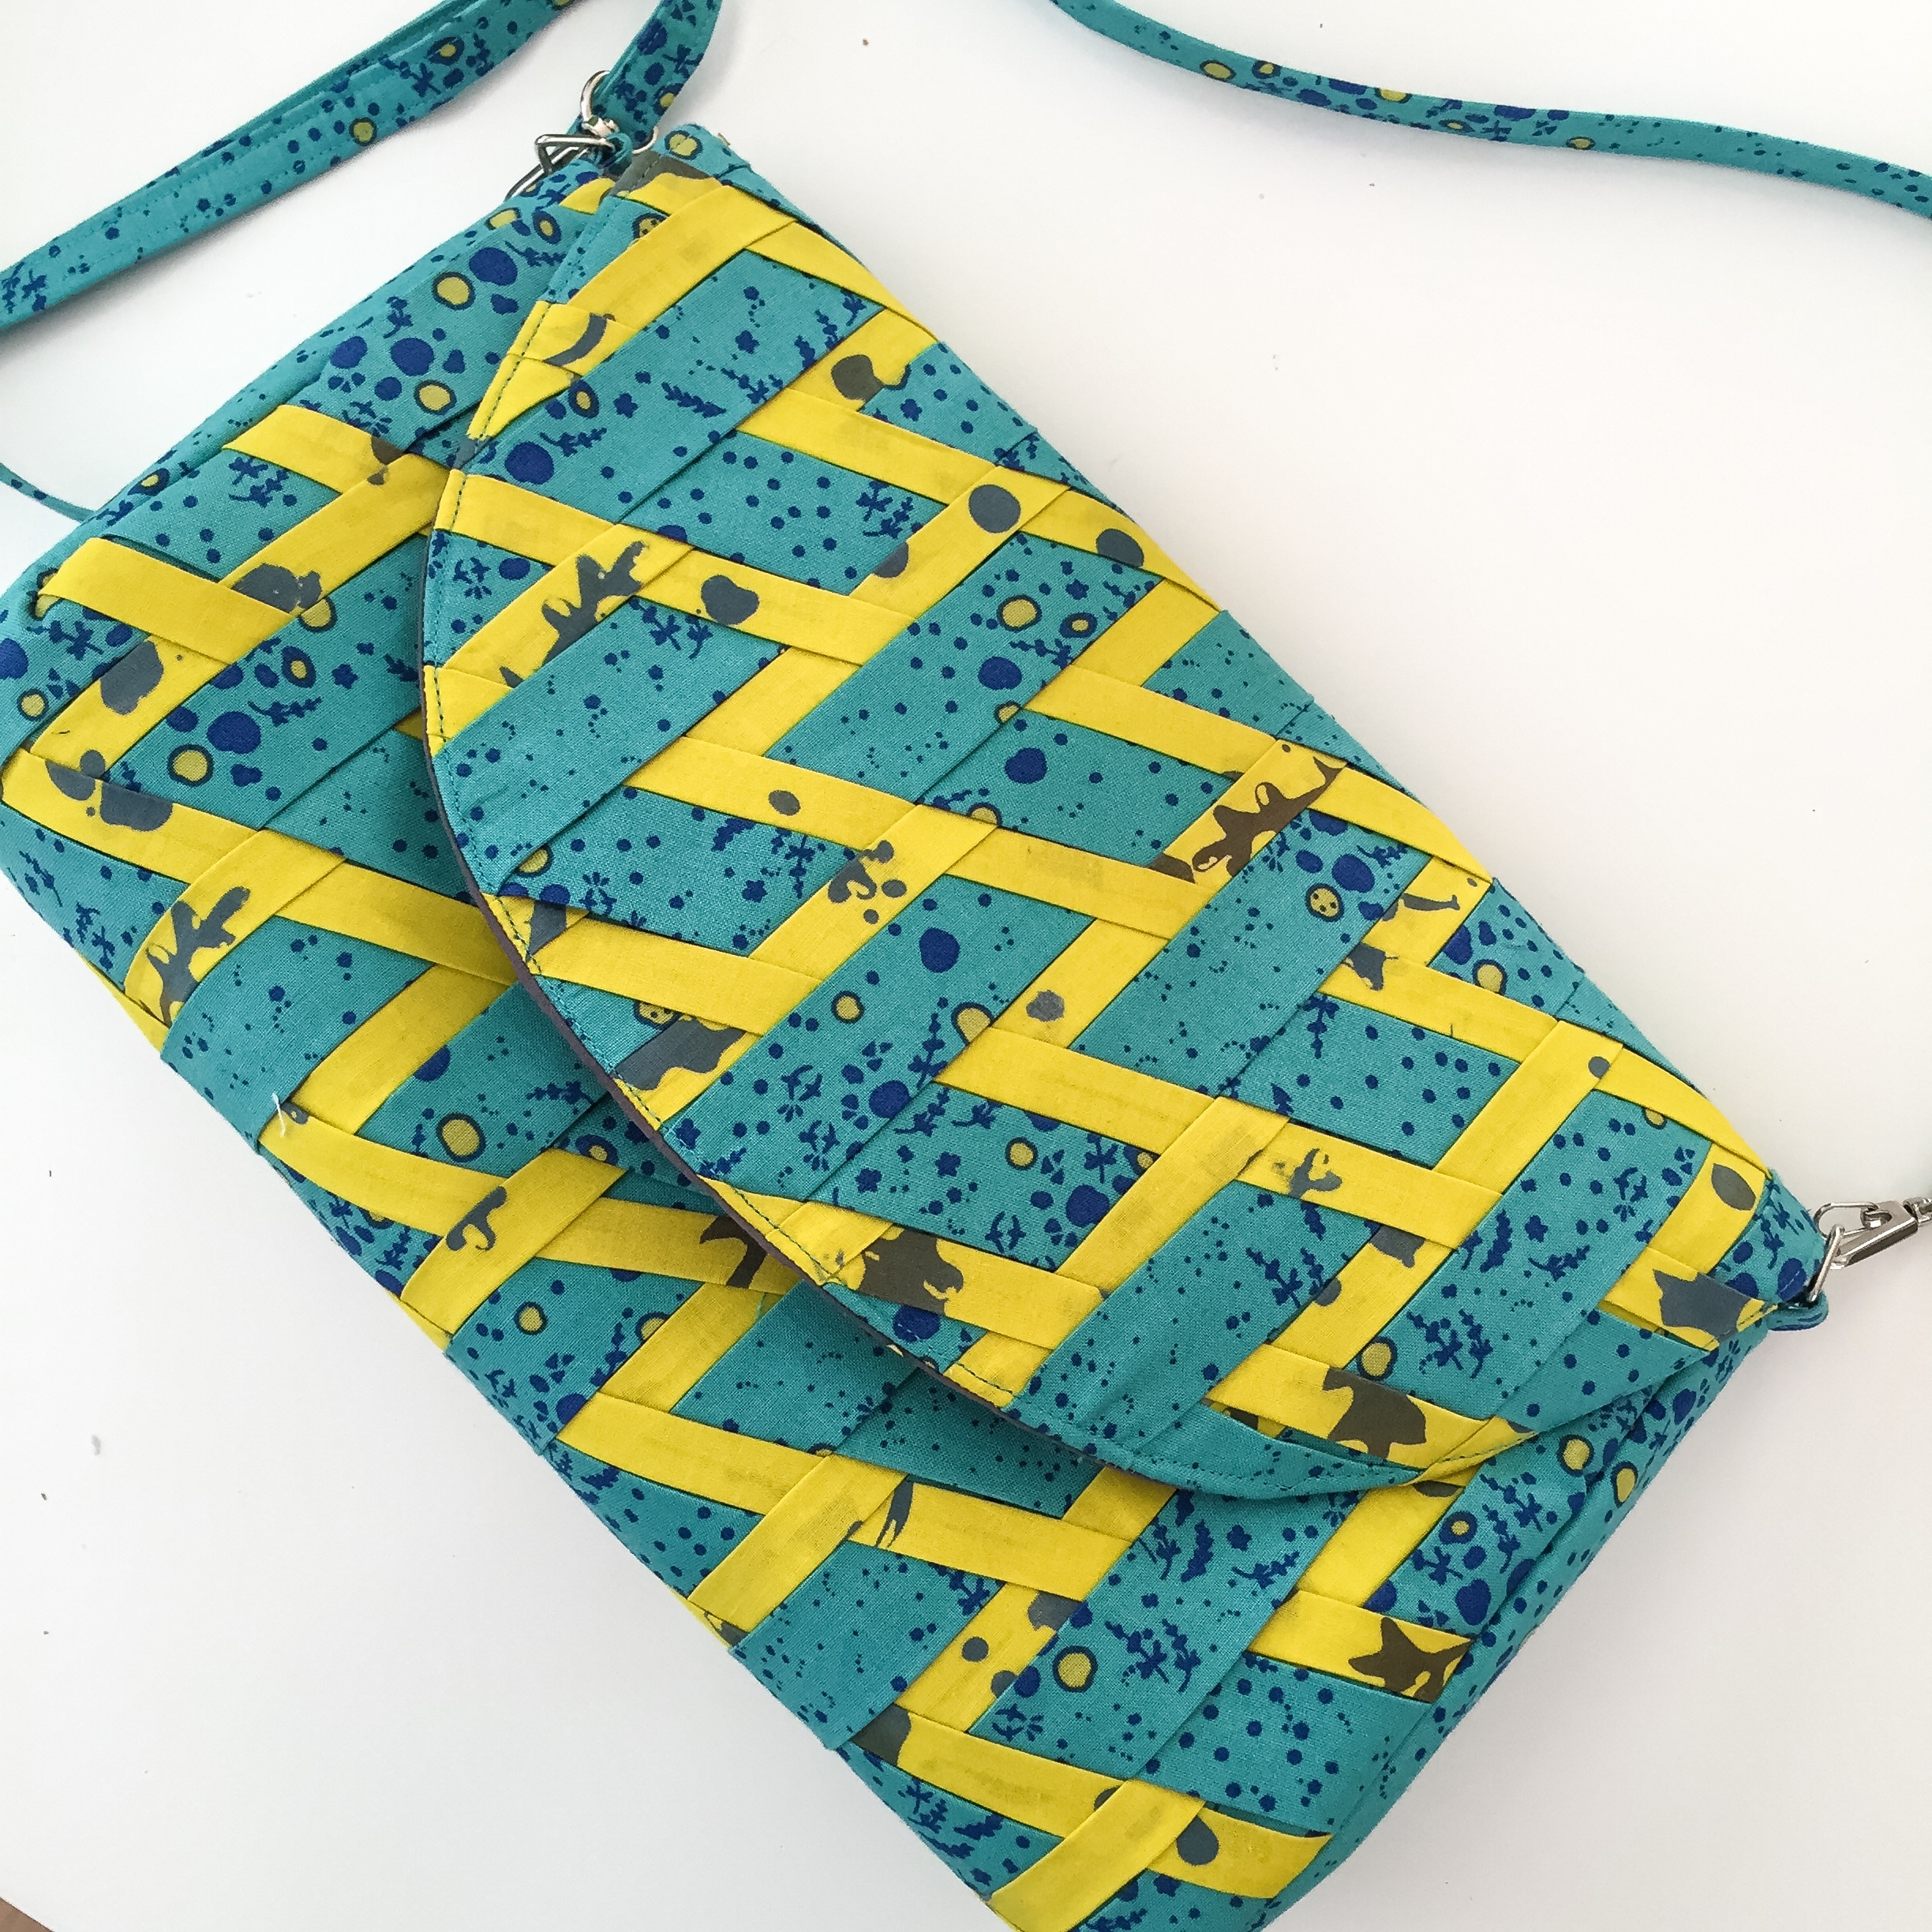 Clare Anna Purse in Alison Glass Sunprint and Handcrafted